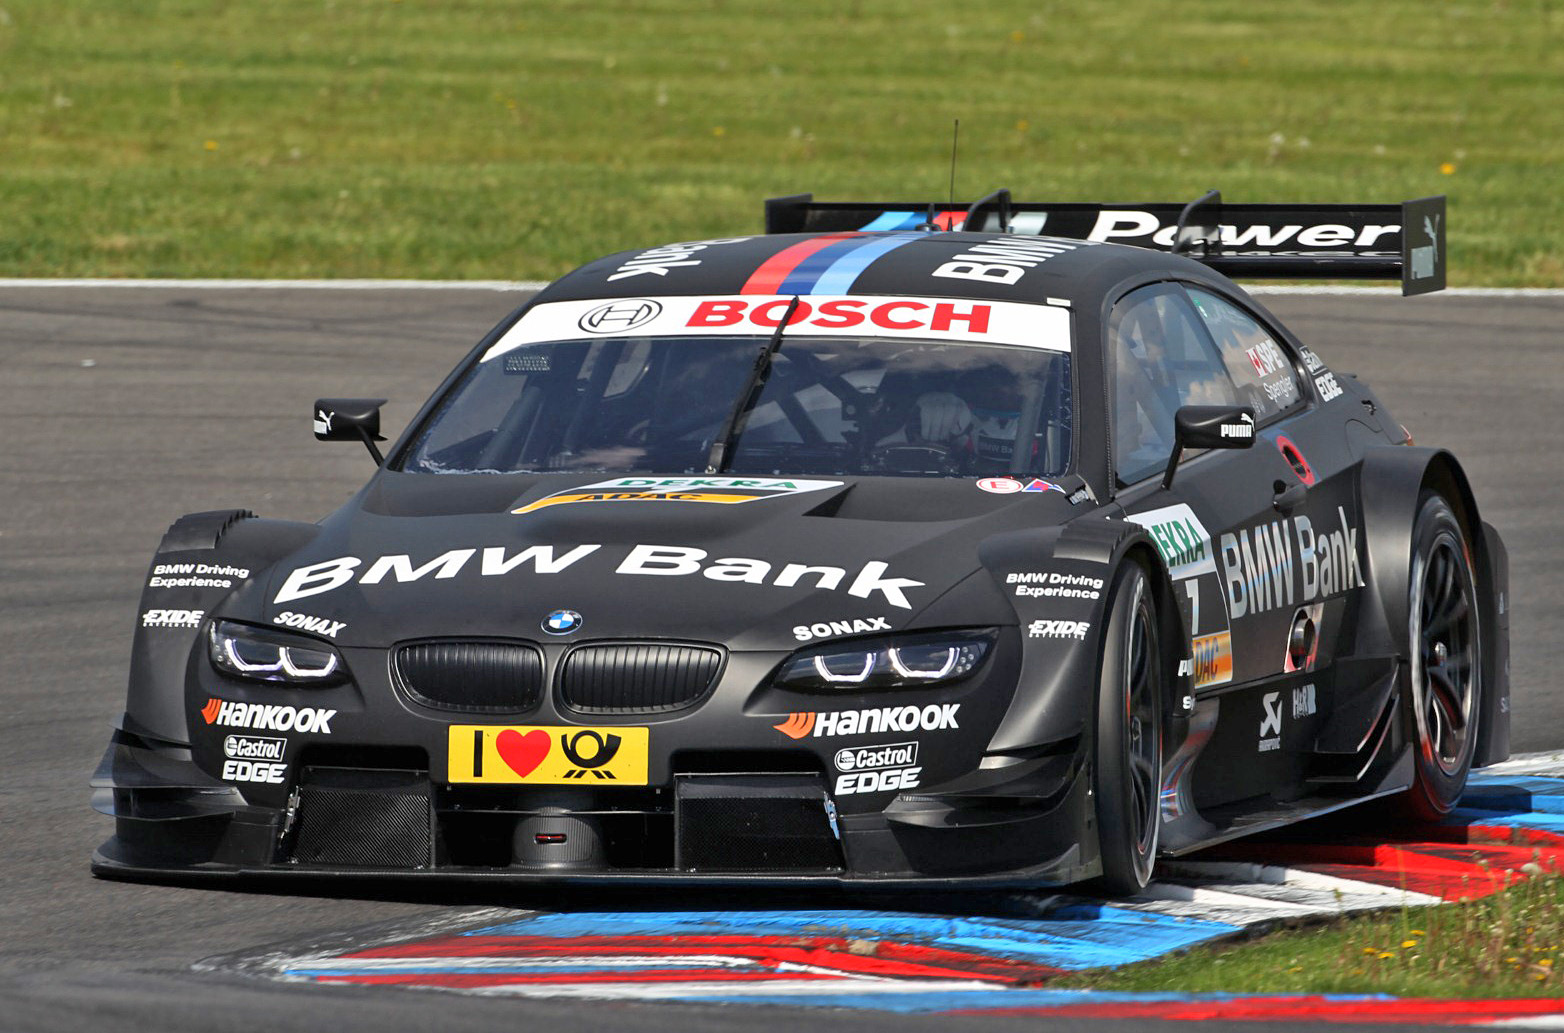 Introducing the Limited BMW M3 DTM Champion Edition - Page 7